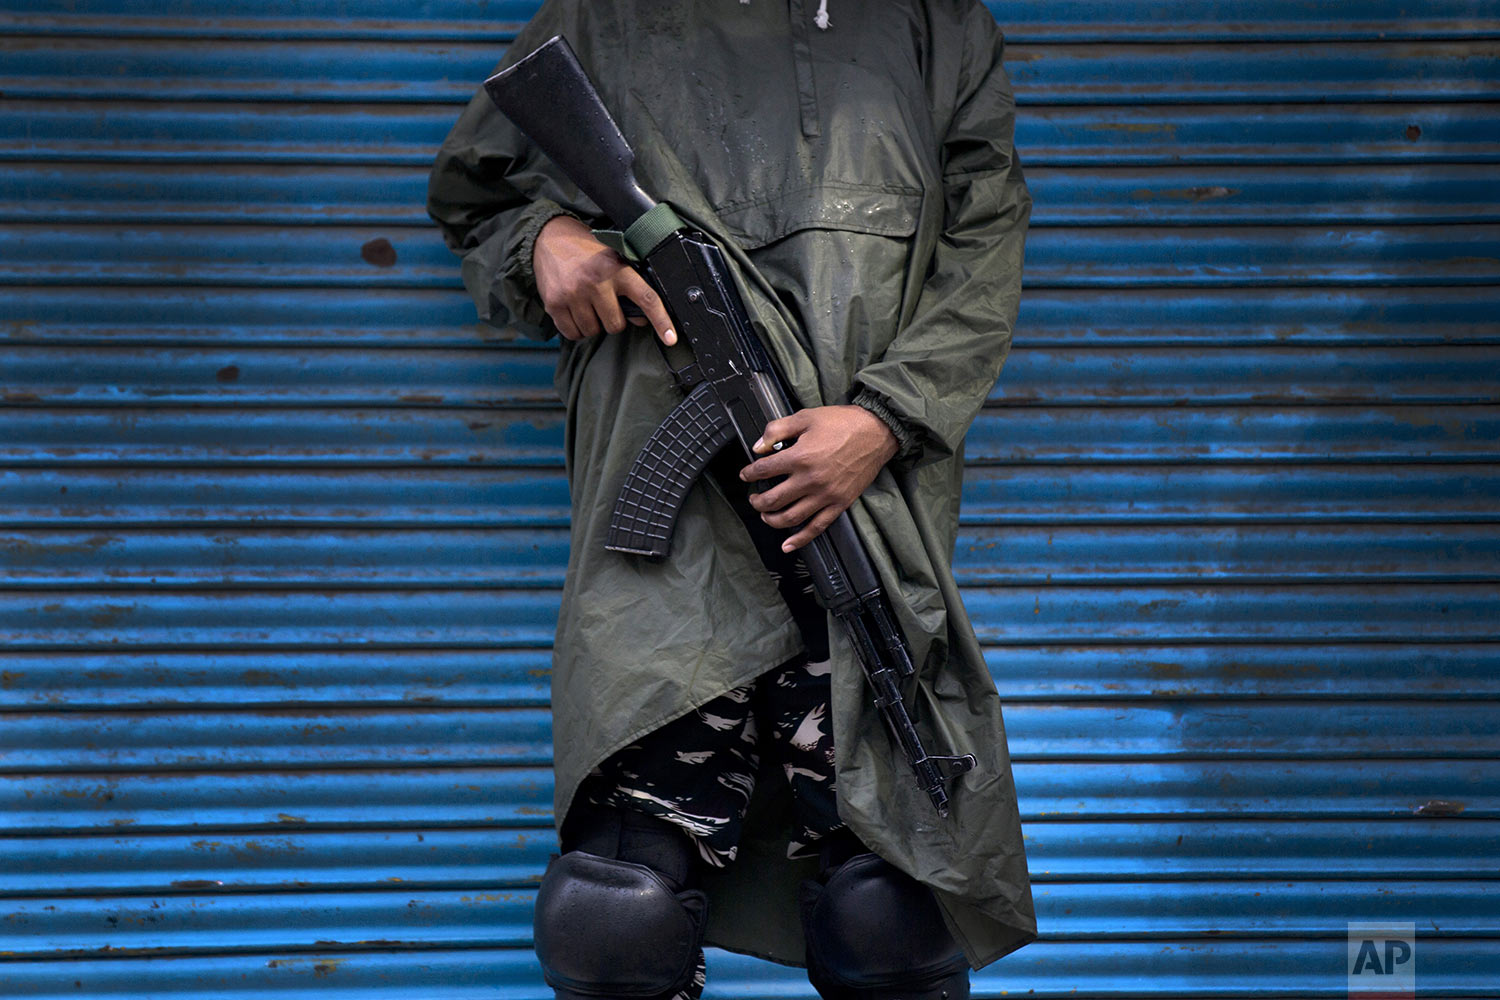 An Indian paramilitary soldier stands guard during security lockdown in Srinagar, Indian controlled Kashmir, Wednesday, Aug. 14, 2019. (AP Photo/ Dar Yasin)